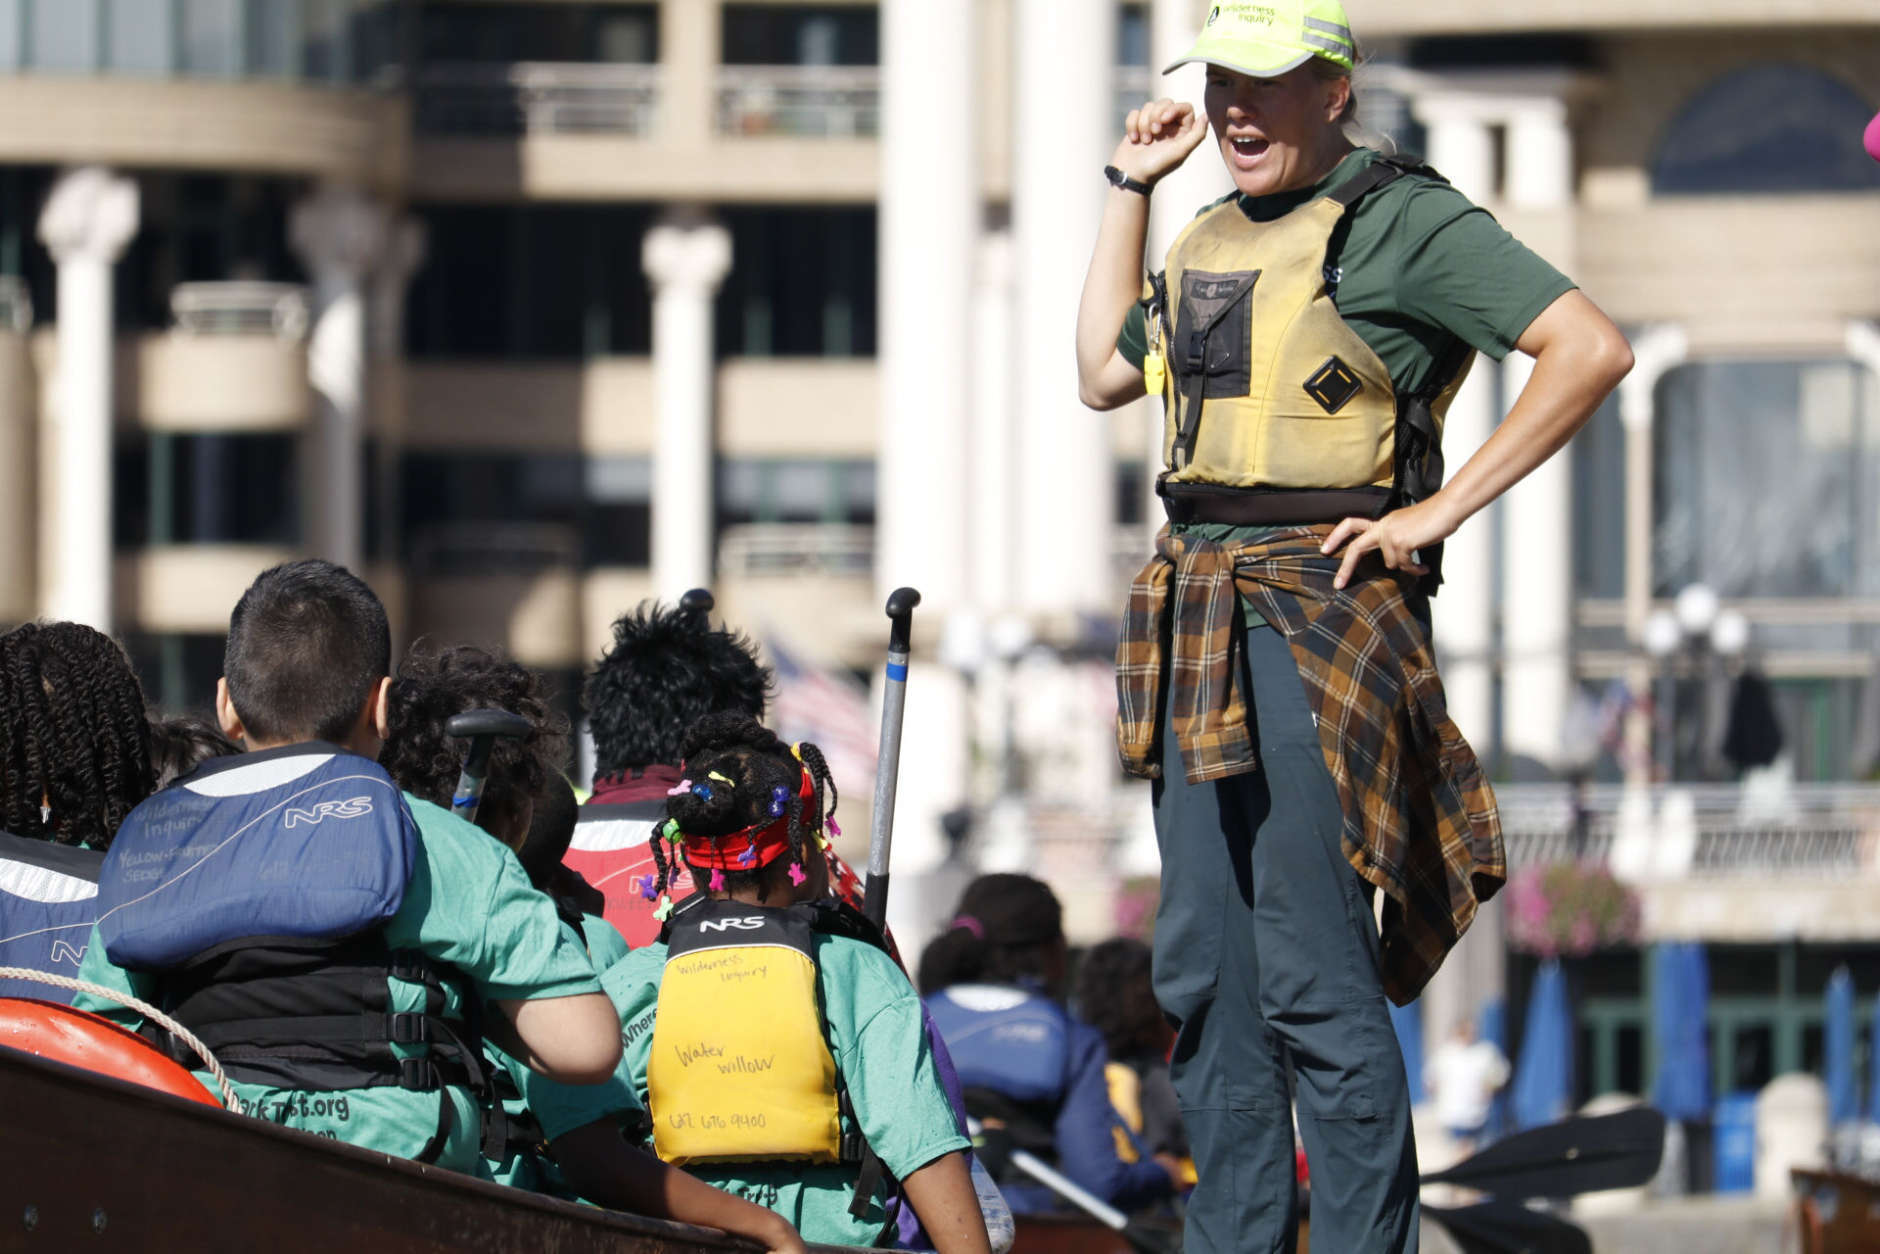 Fourth-graders get instruction before heading out on the Potomac River. (WTOP/Kate Ryan)